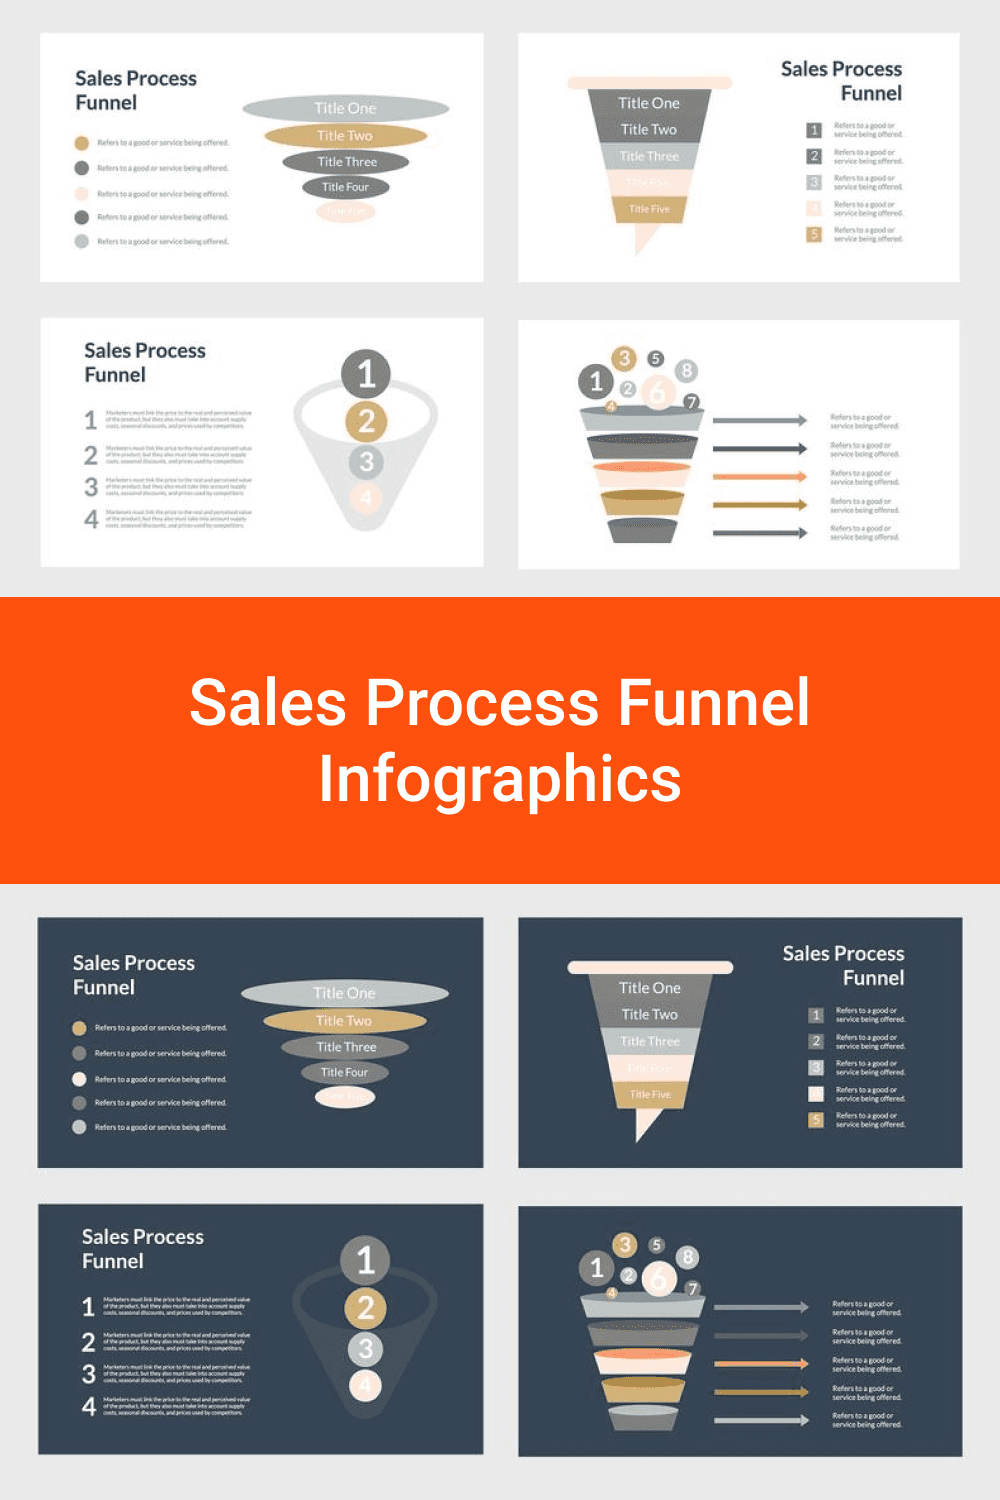 Sales Process Funnel Infographics.